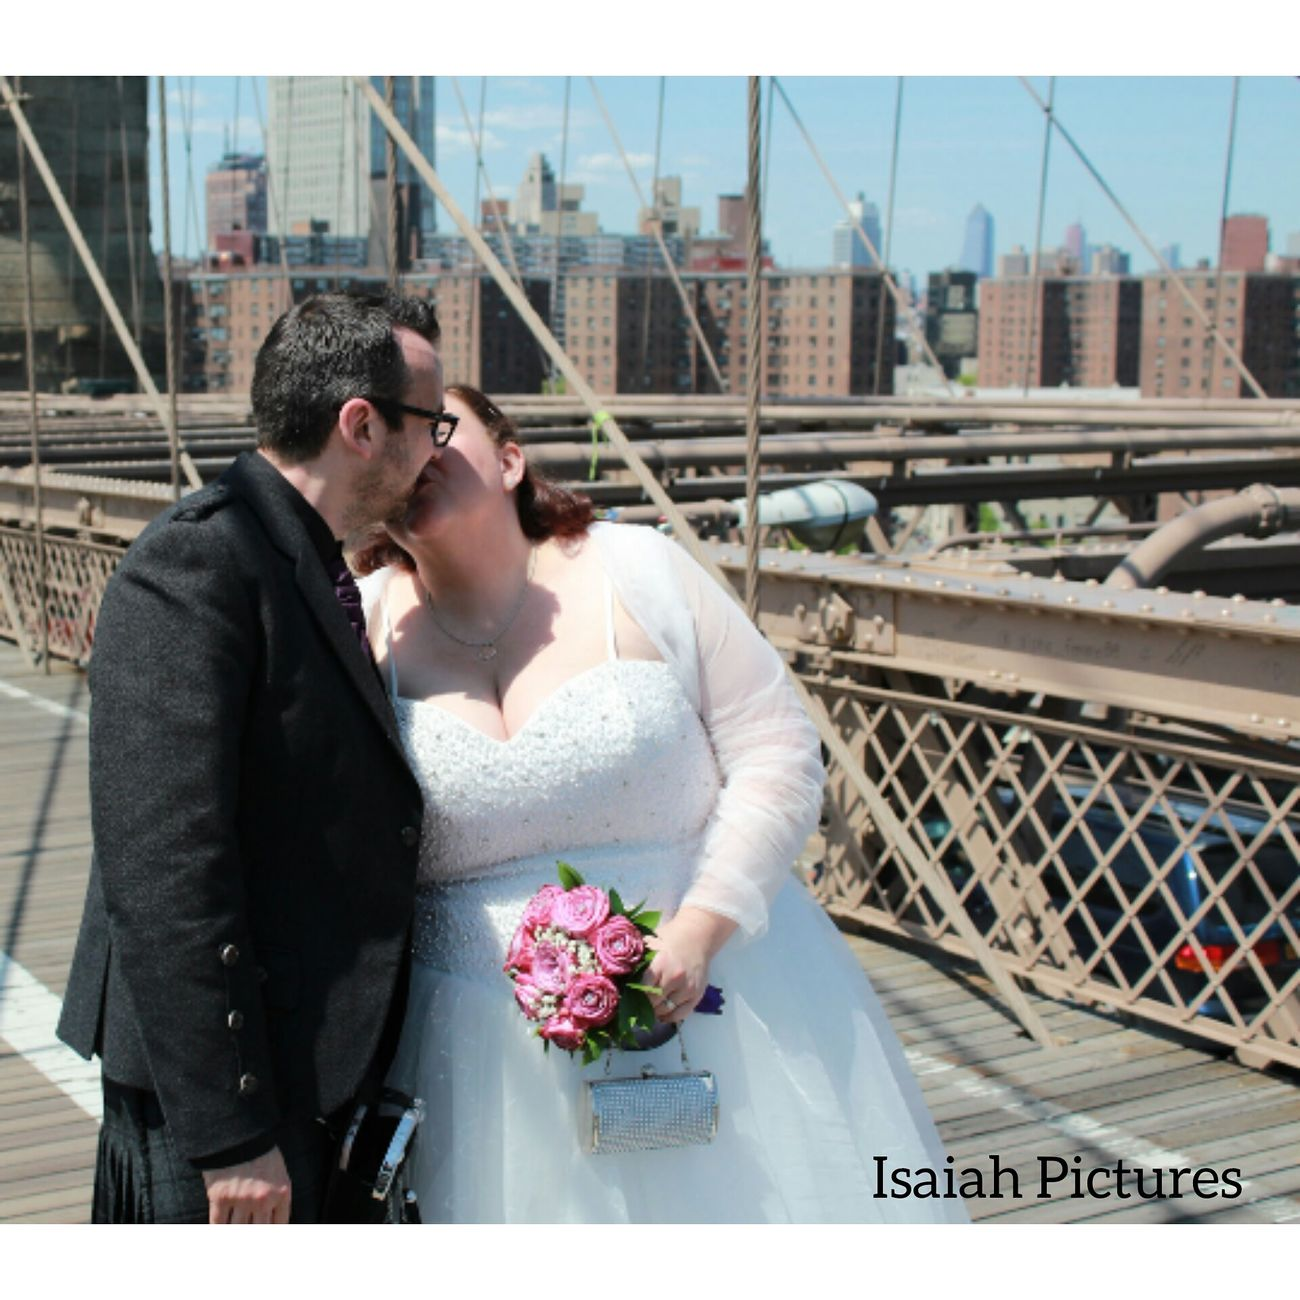 Hello World Enjoying Life Brooklyn Bridge / New York EyeEmNyc Canon_photos NYC Photography Eyeemphotography NYC Skyline Enjoying Life Shesaidyes Check This Out Justmarried💑 EyeEmBestPics Eye4photography